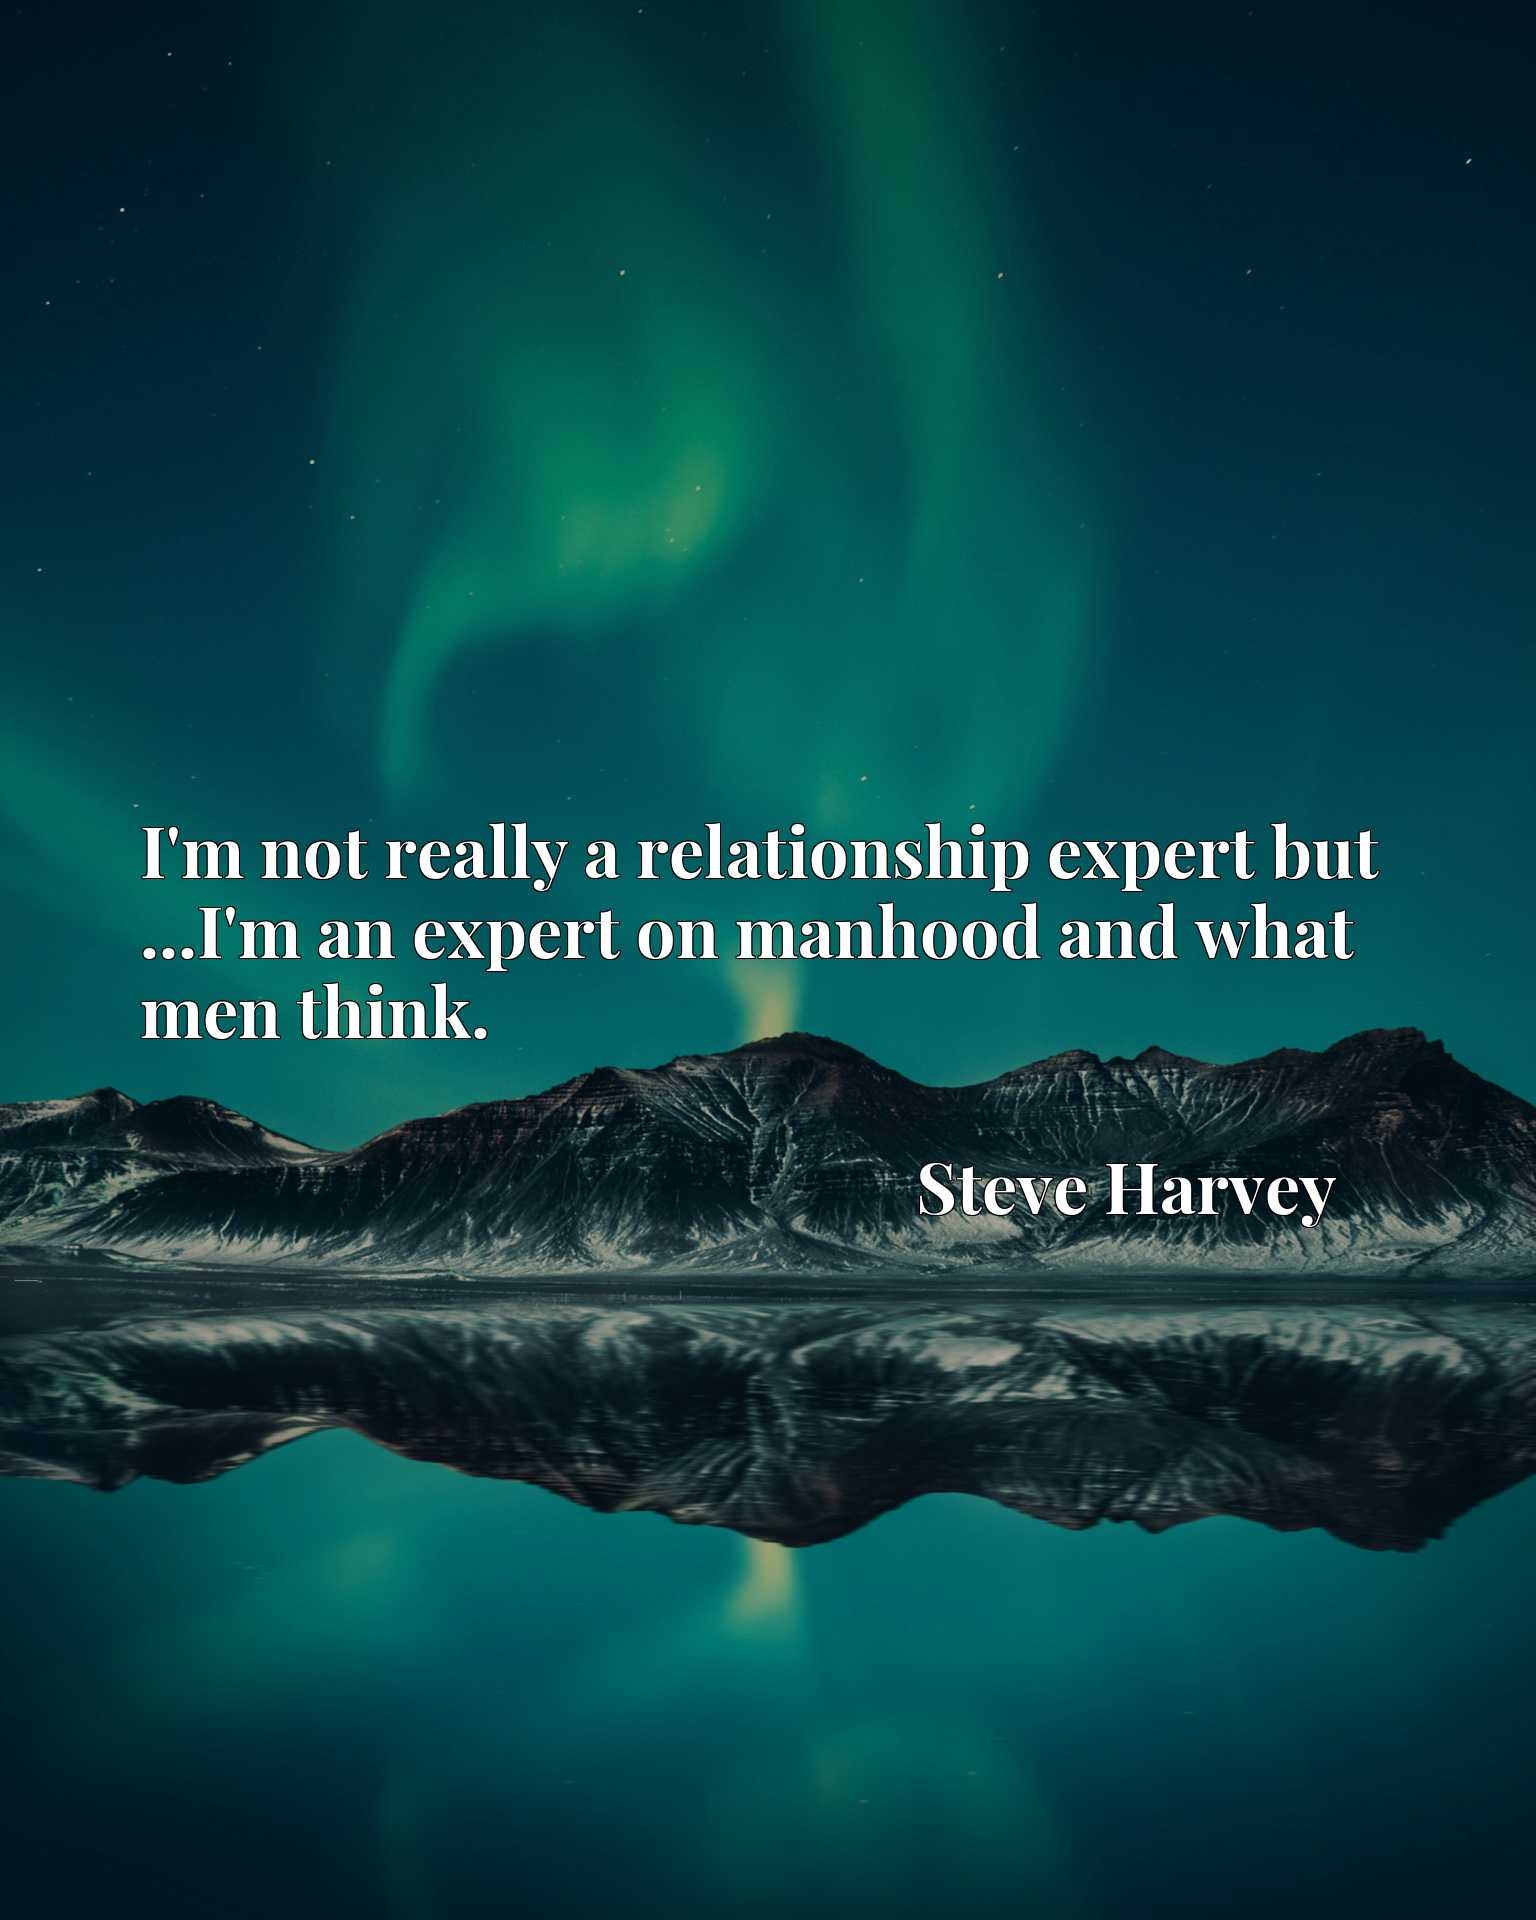 I'm not really a relationship expert but ...I'm an expert on manhood and what men think.